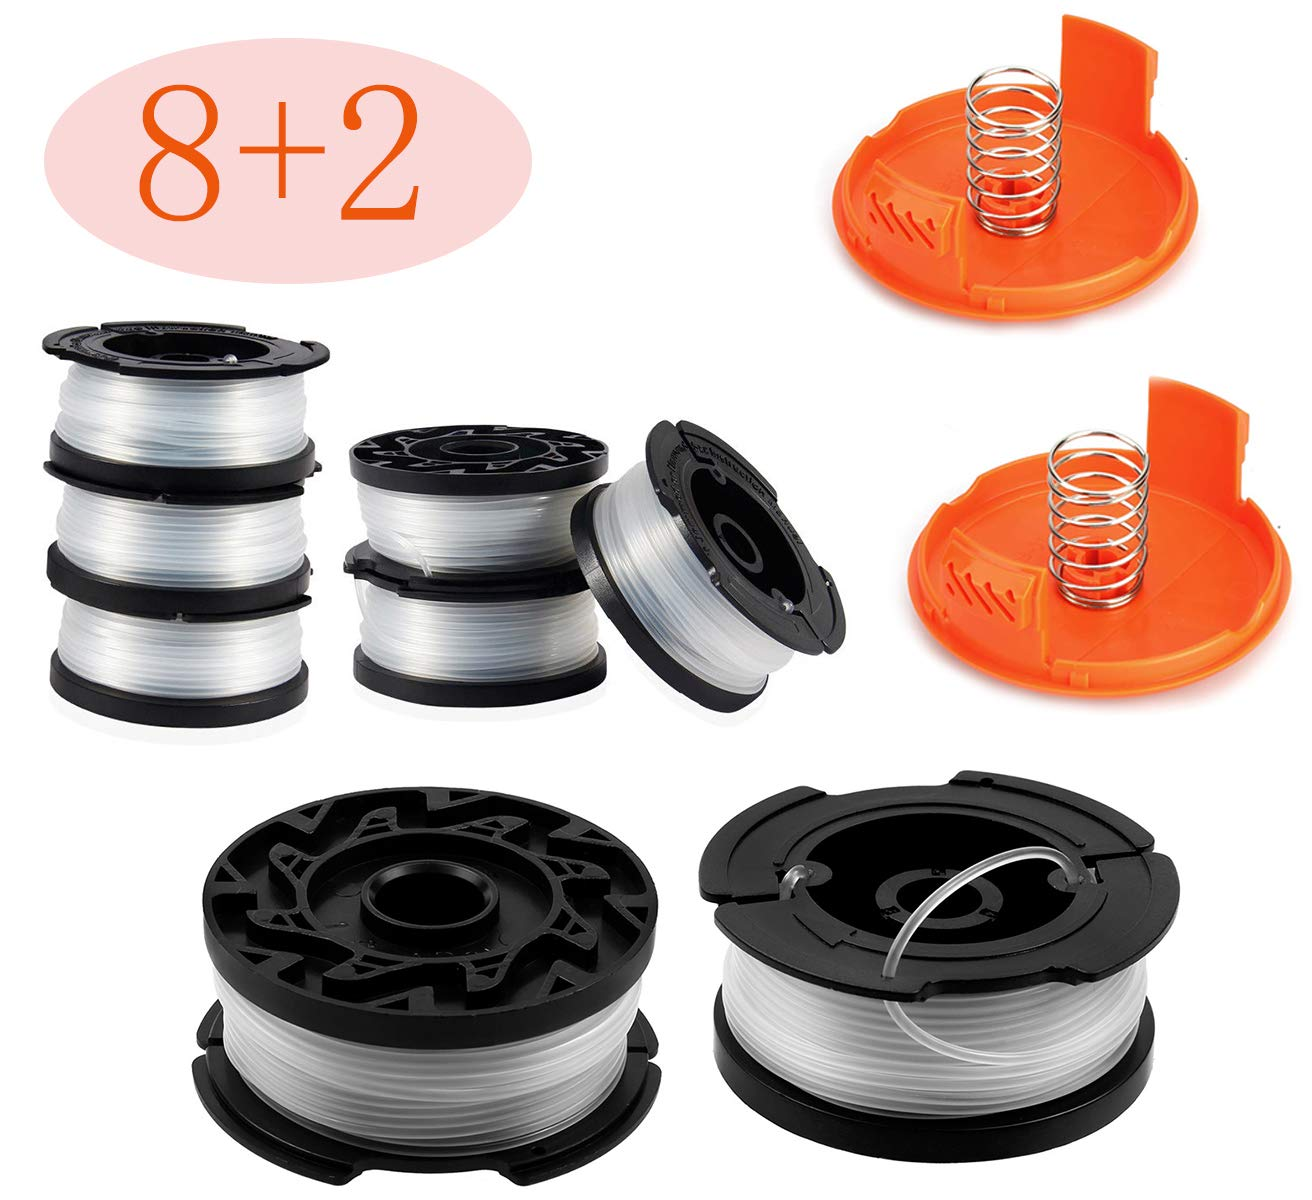 30ft 0.065'' Line String Trimmer Replacement Spool - Autofeed Trimmer Line Spool,10-Pack Compatible with Black+Decker AF-100-3ZP Weed Eater String Trimmers ( 8 Replacement Line Spool,2 Trimmer Cap)